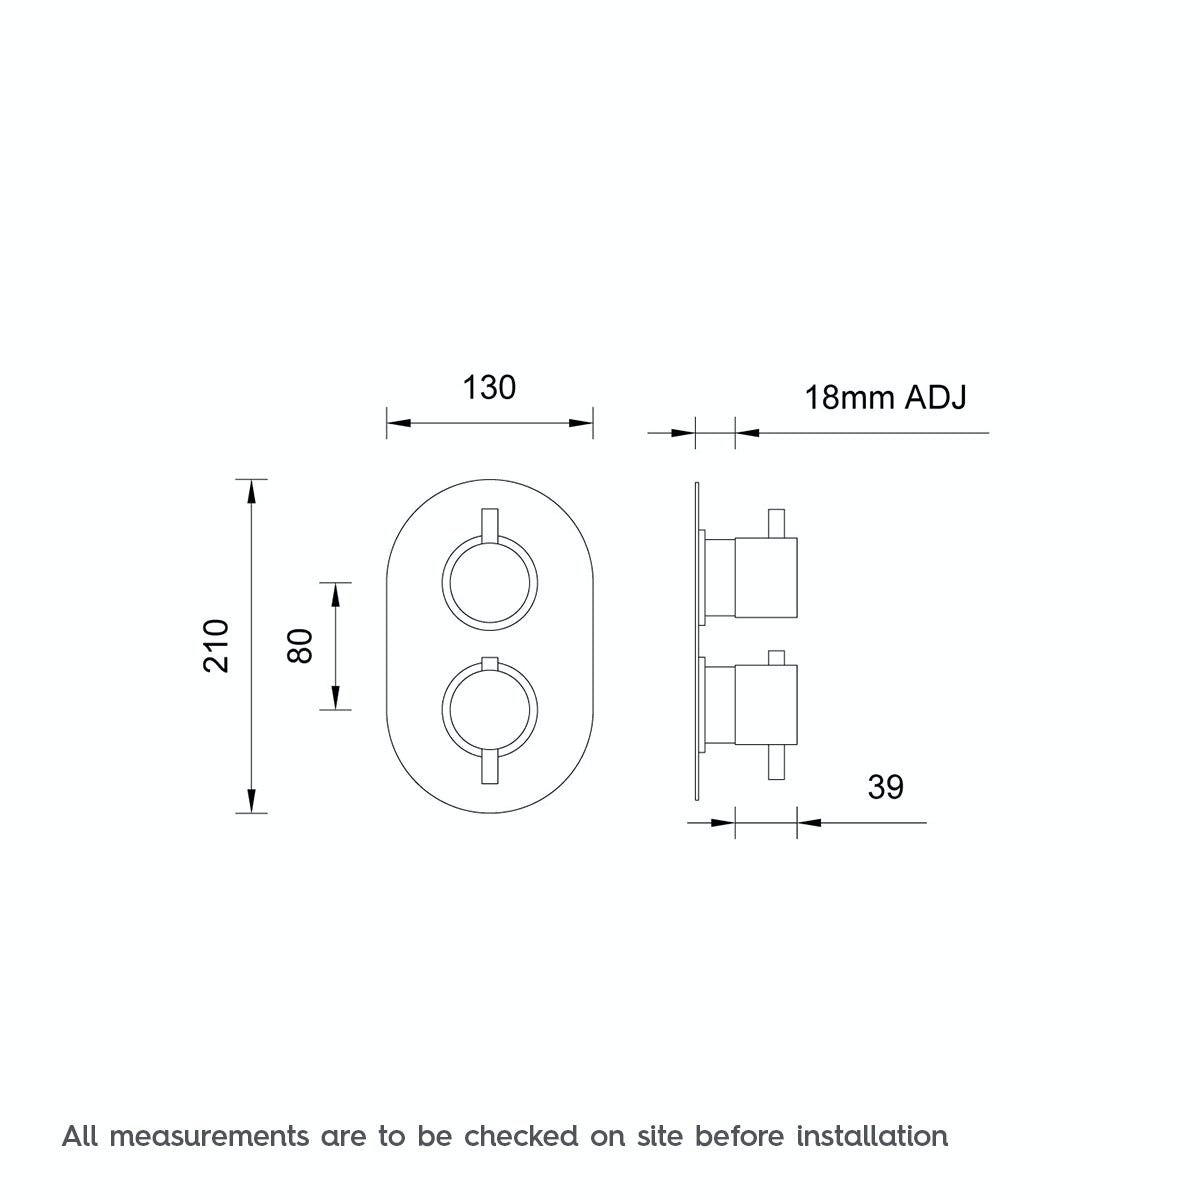 Dimensions for Mode Matrix oval twin thermostatic shower valve